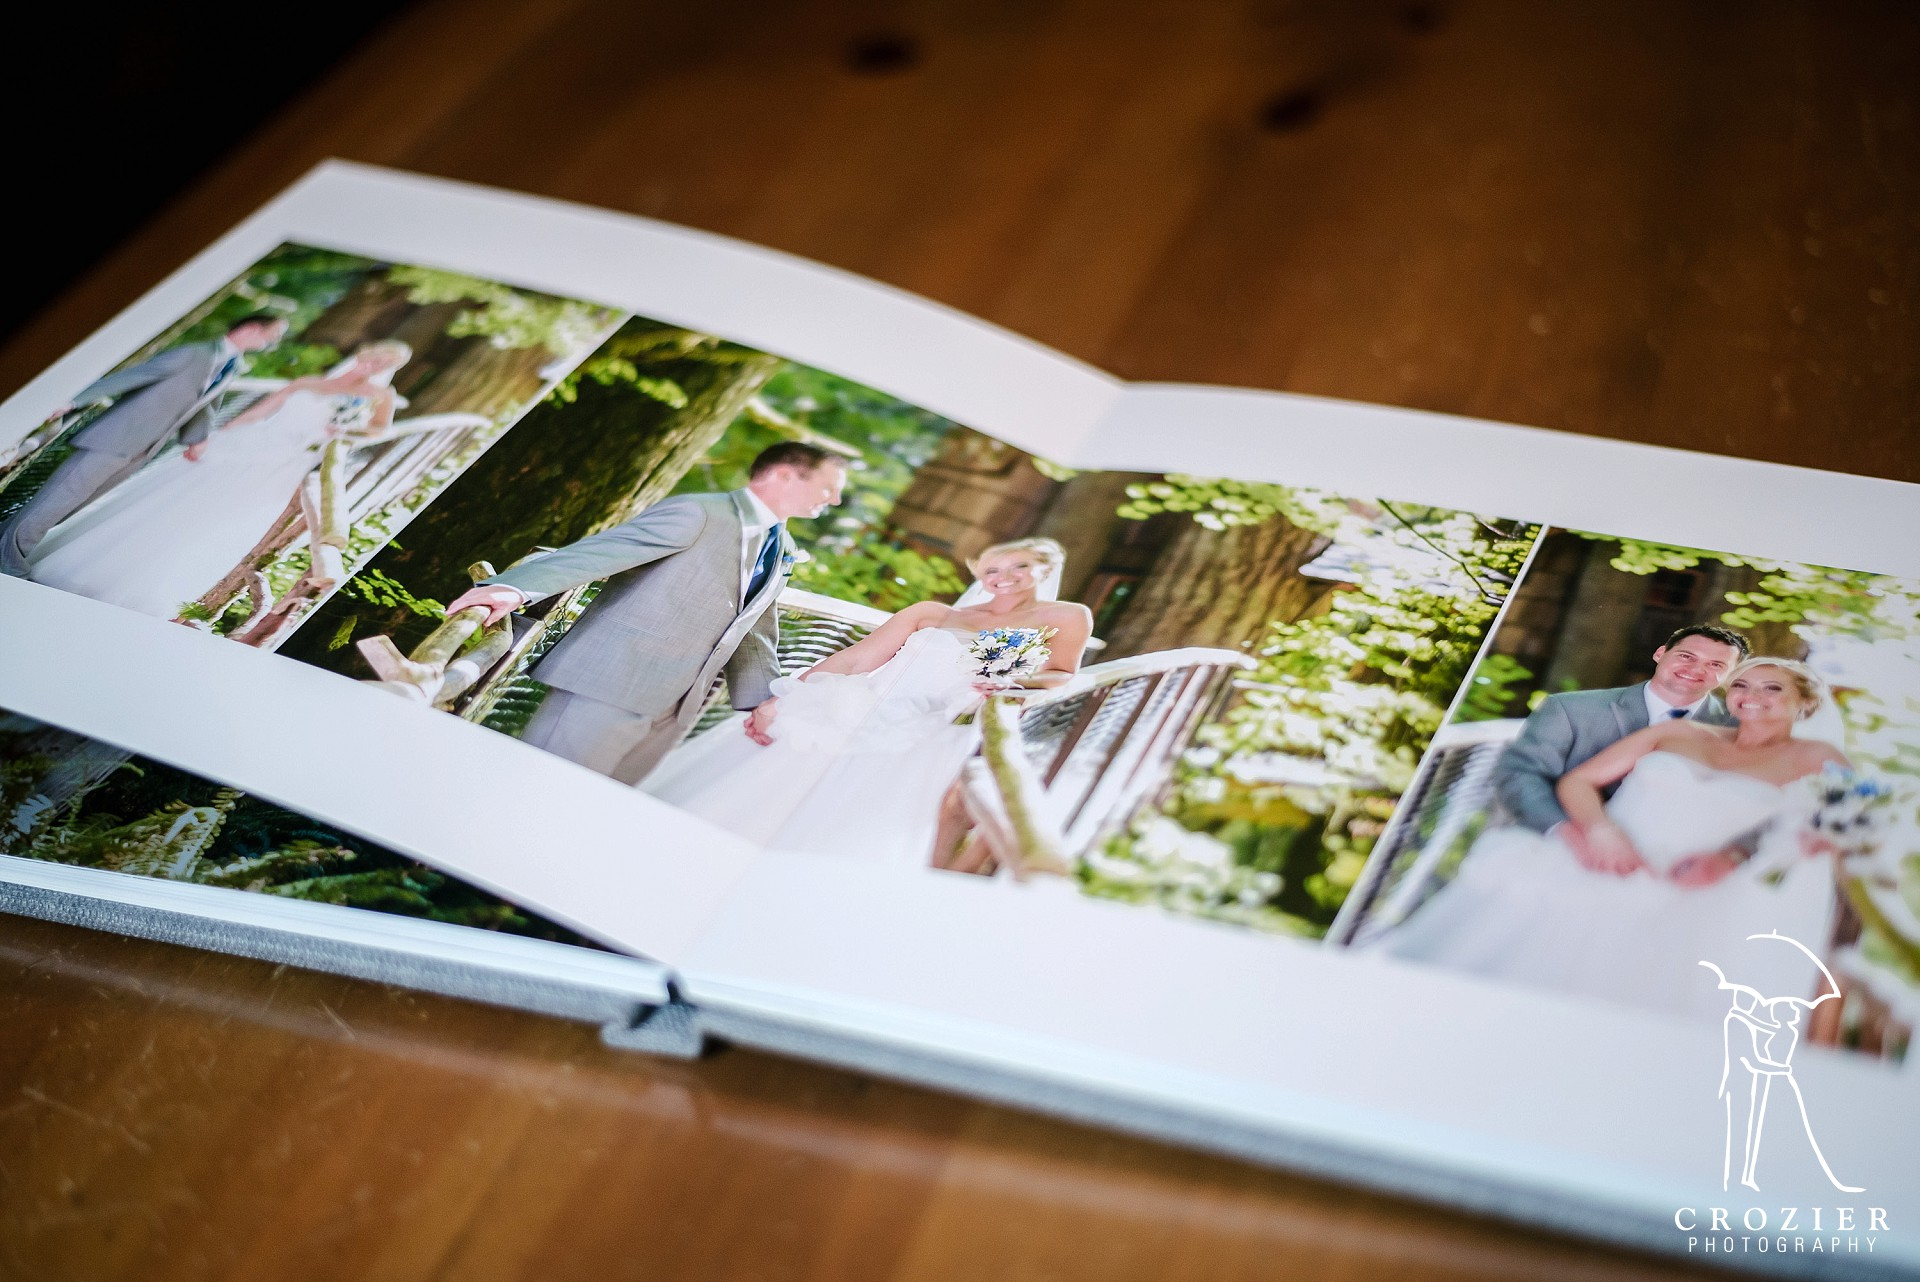 Coffee table wedding album 115 crozier photography for Top 10 coffee table books 2016